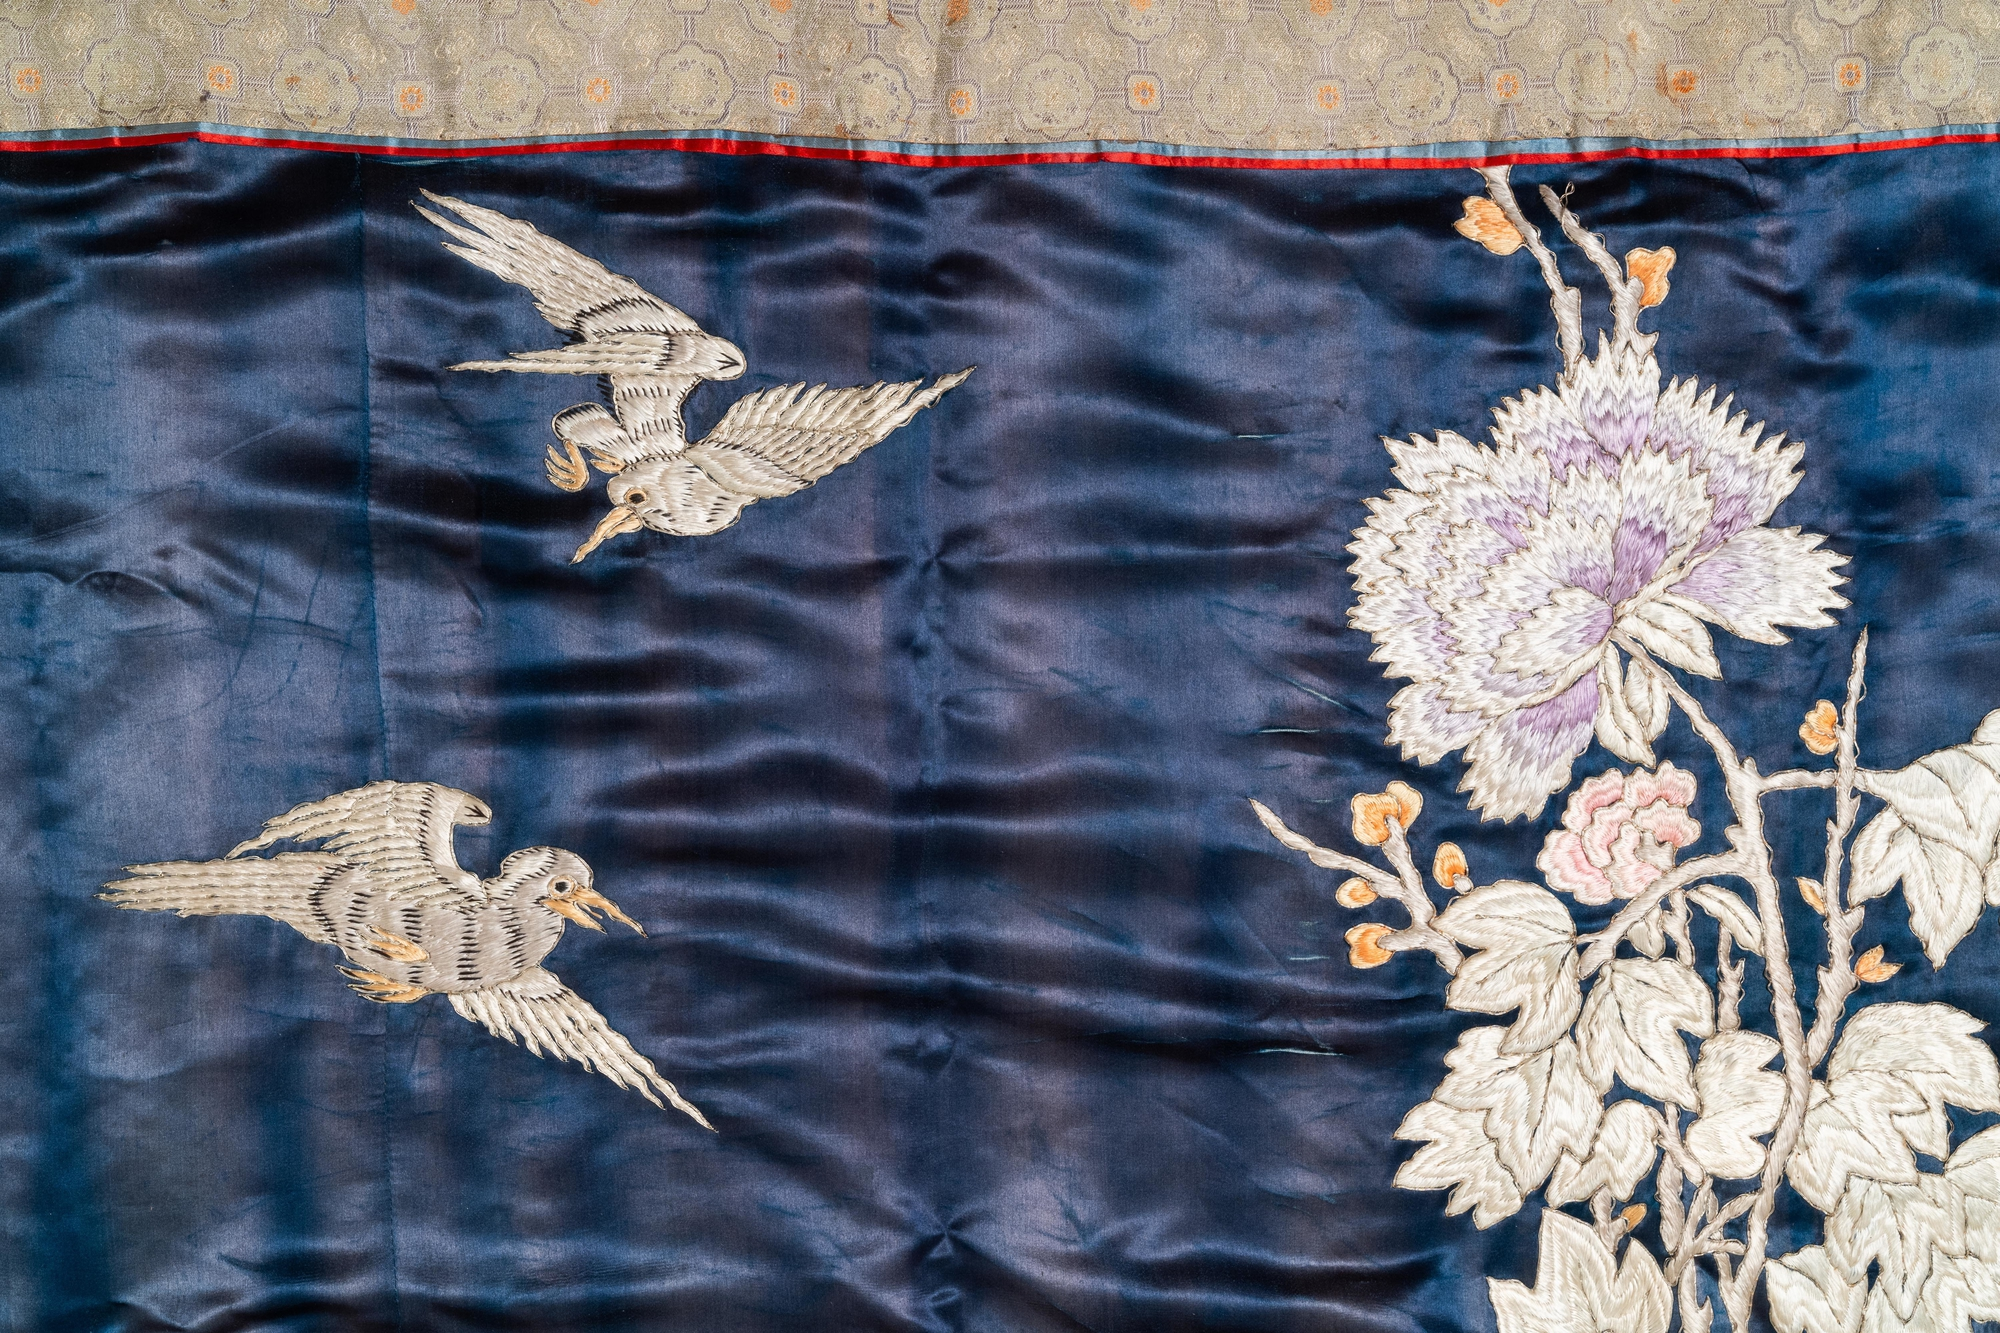 Three Chinese panels of embroidered silk, 19/20th C. - Image 13 of 17